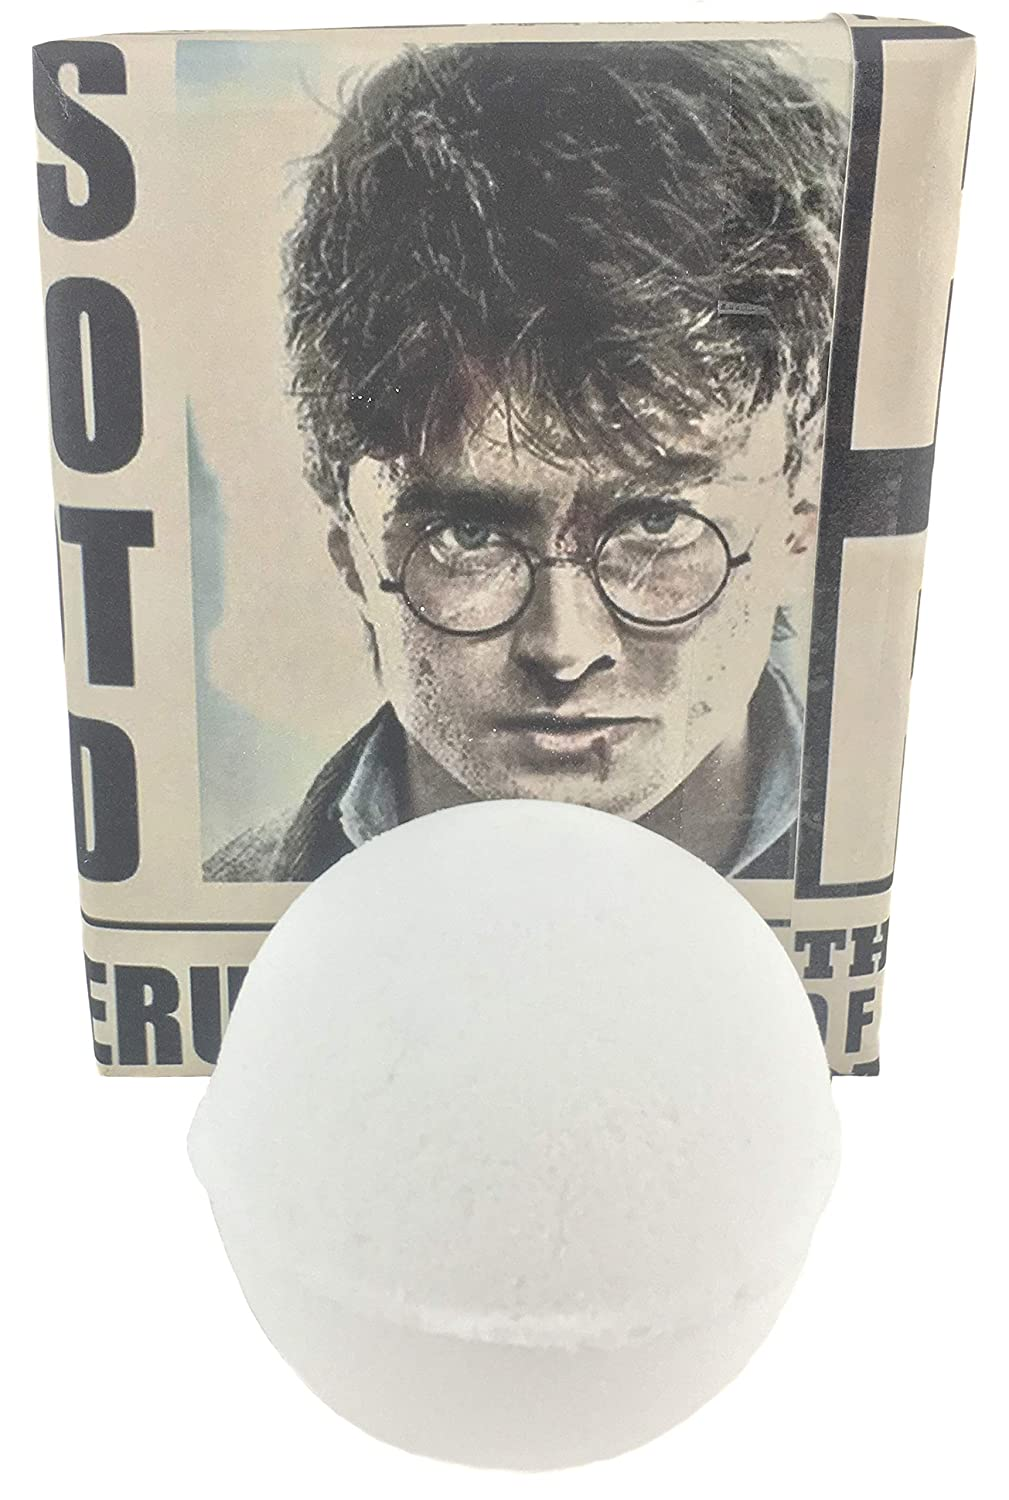 Harry Potter Sorting Hat Bath Bomb Hogwarts Wizard   In which House will your fate lie?   Free Spirit Bath and Body